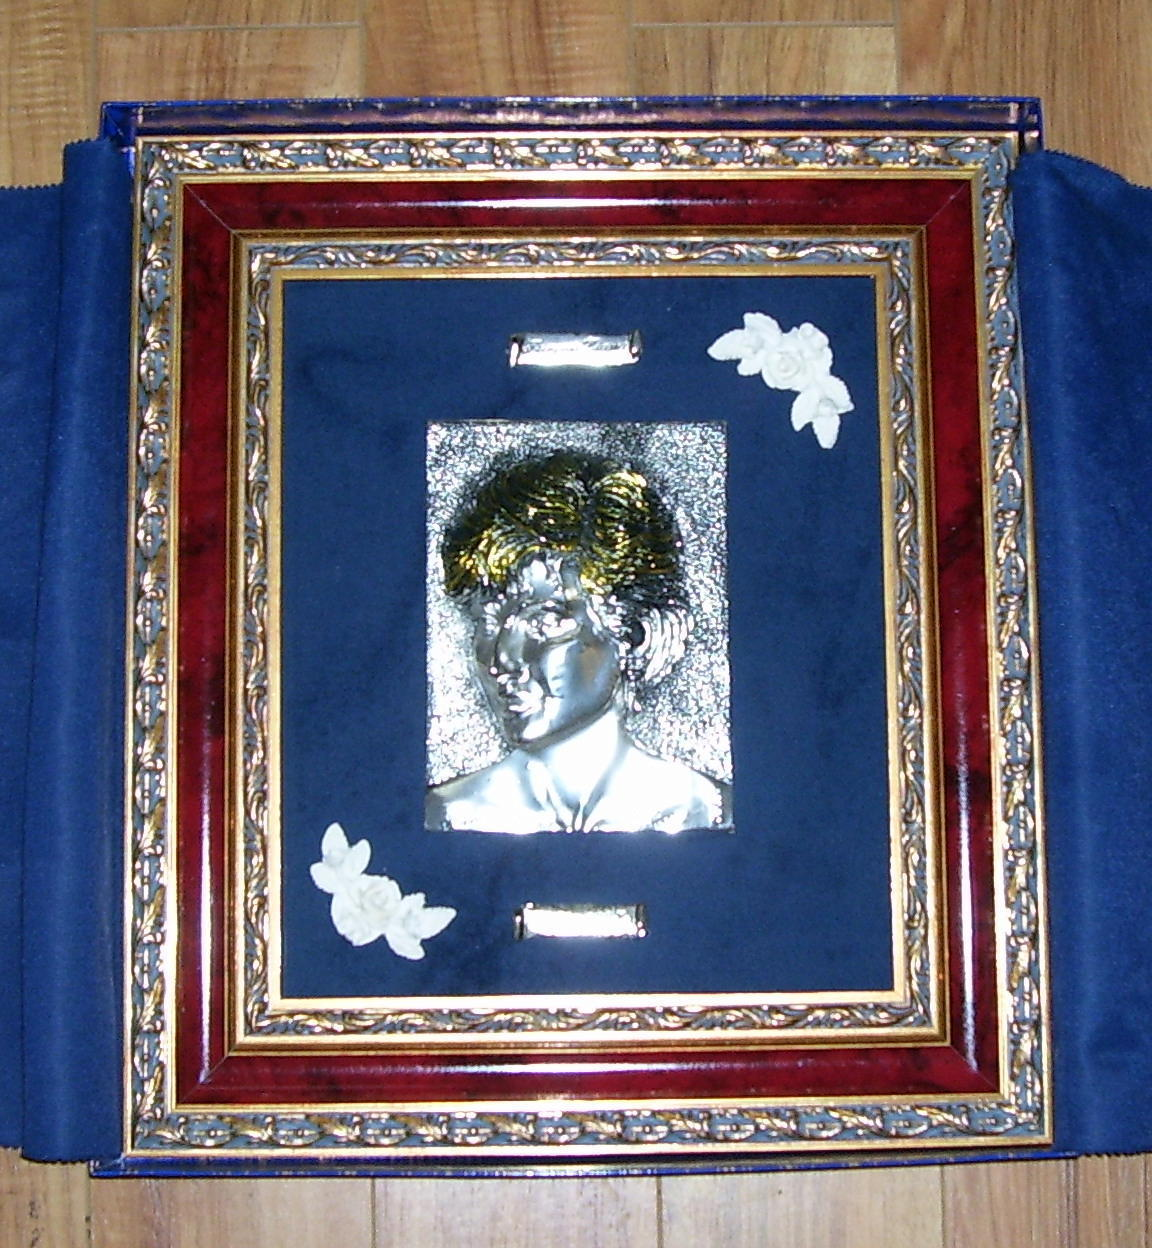 Limited Edition Princess Diana Framed Memorial with COA